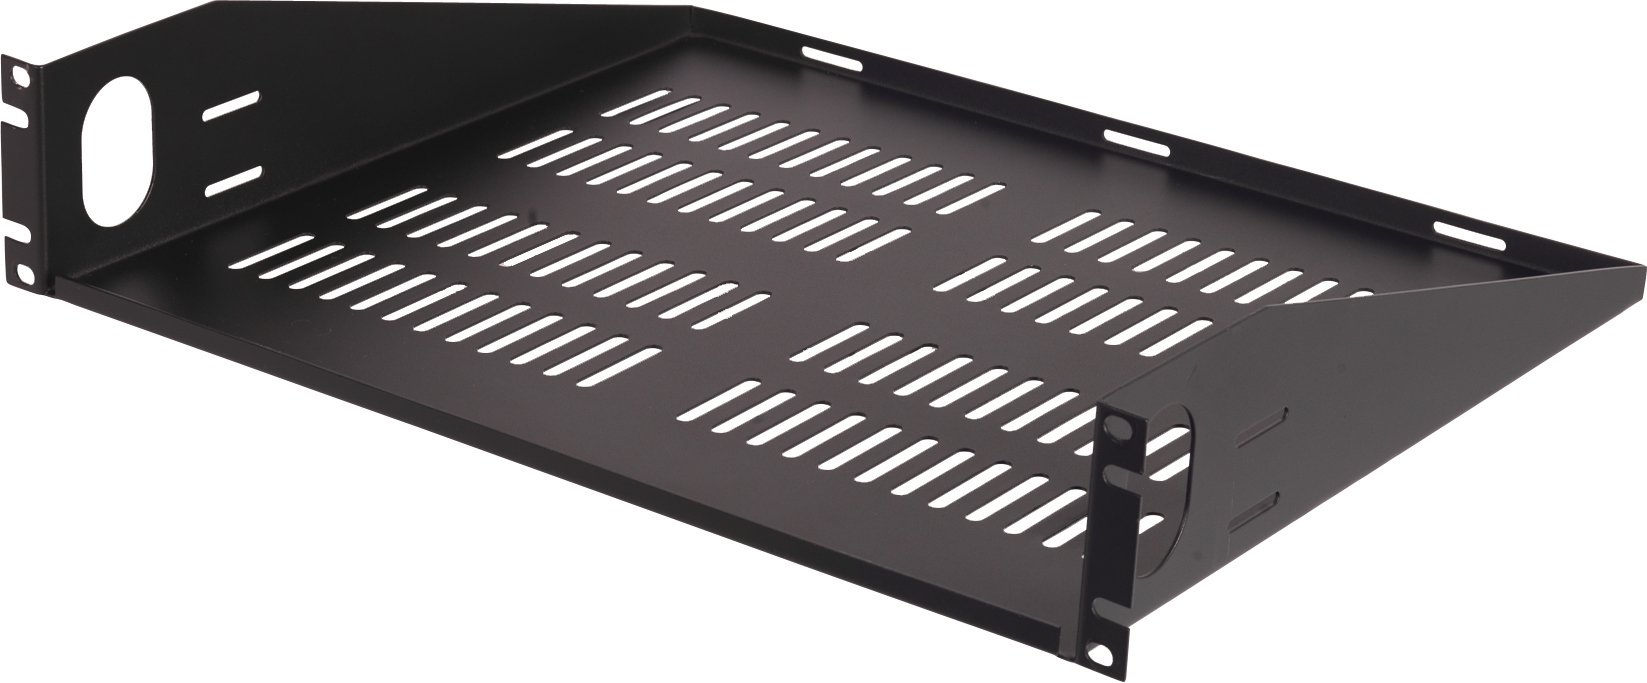 VMP ER-S2UV Universal Vented Two Space Equipment Rack Shelf (Black)